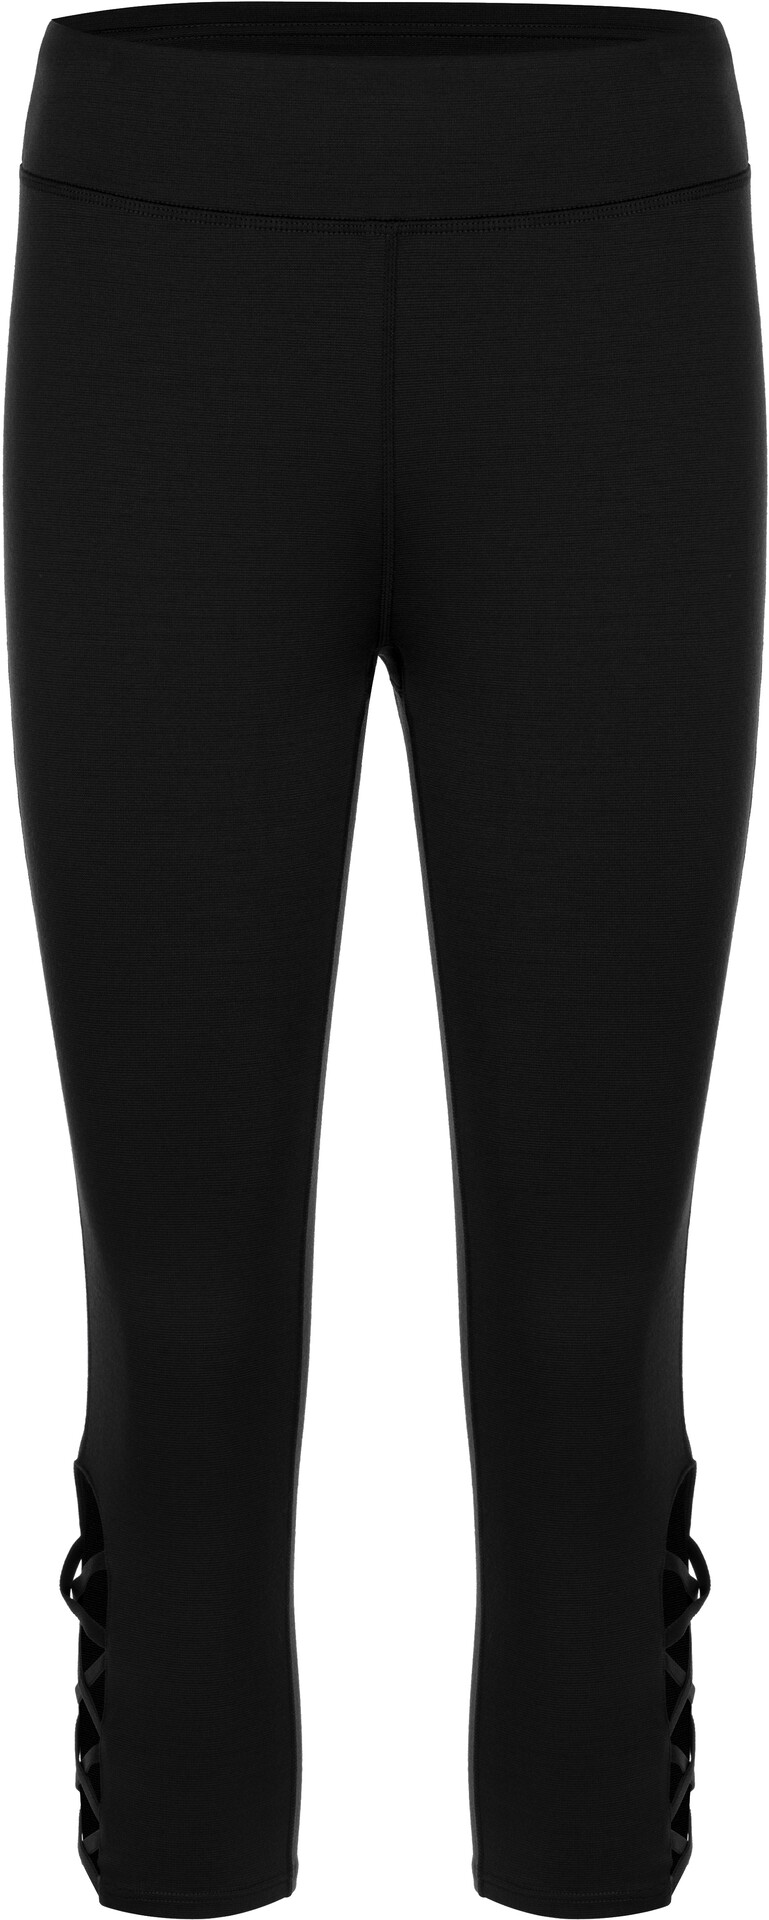 super.natural Motion Criss Cross Pantaloni Donna, jet black su Addnature g94vD